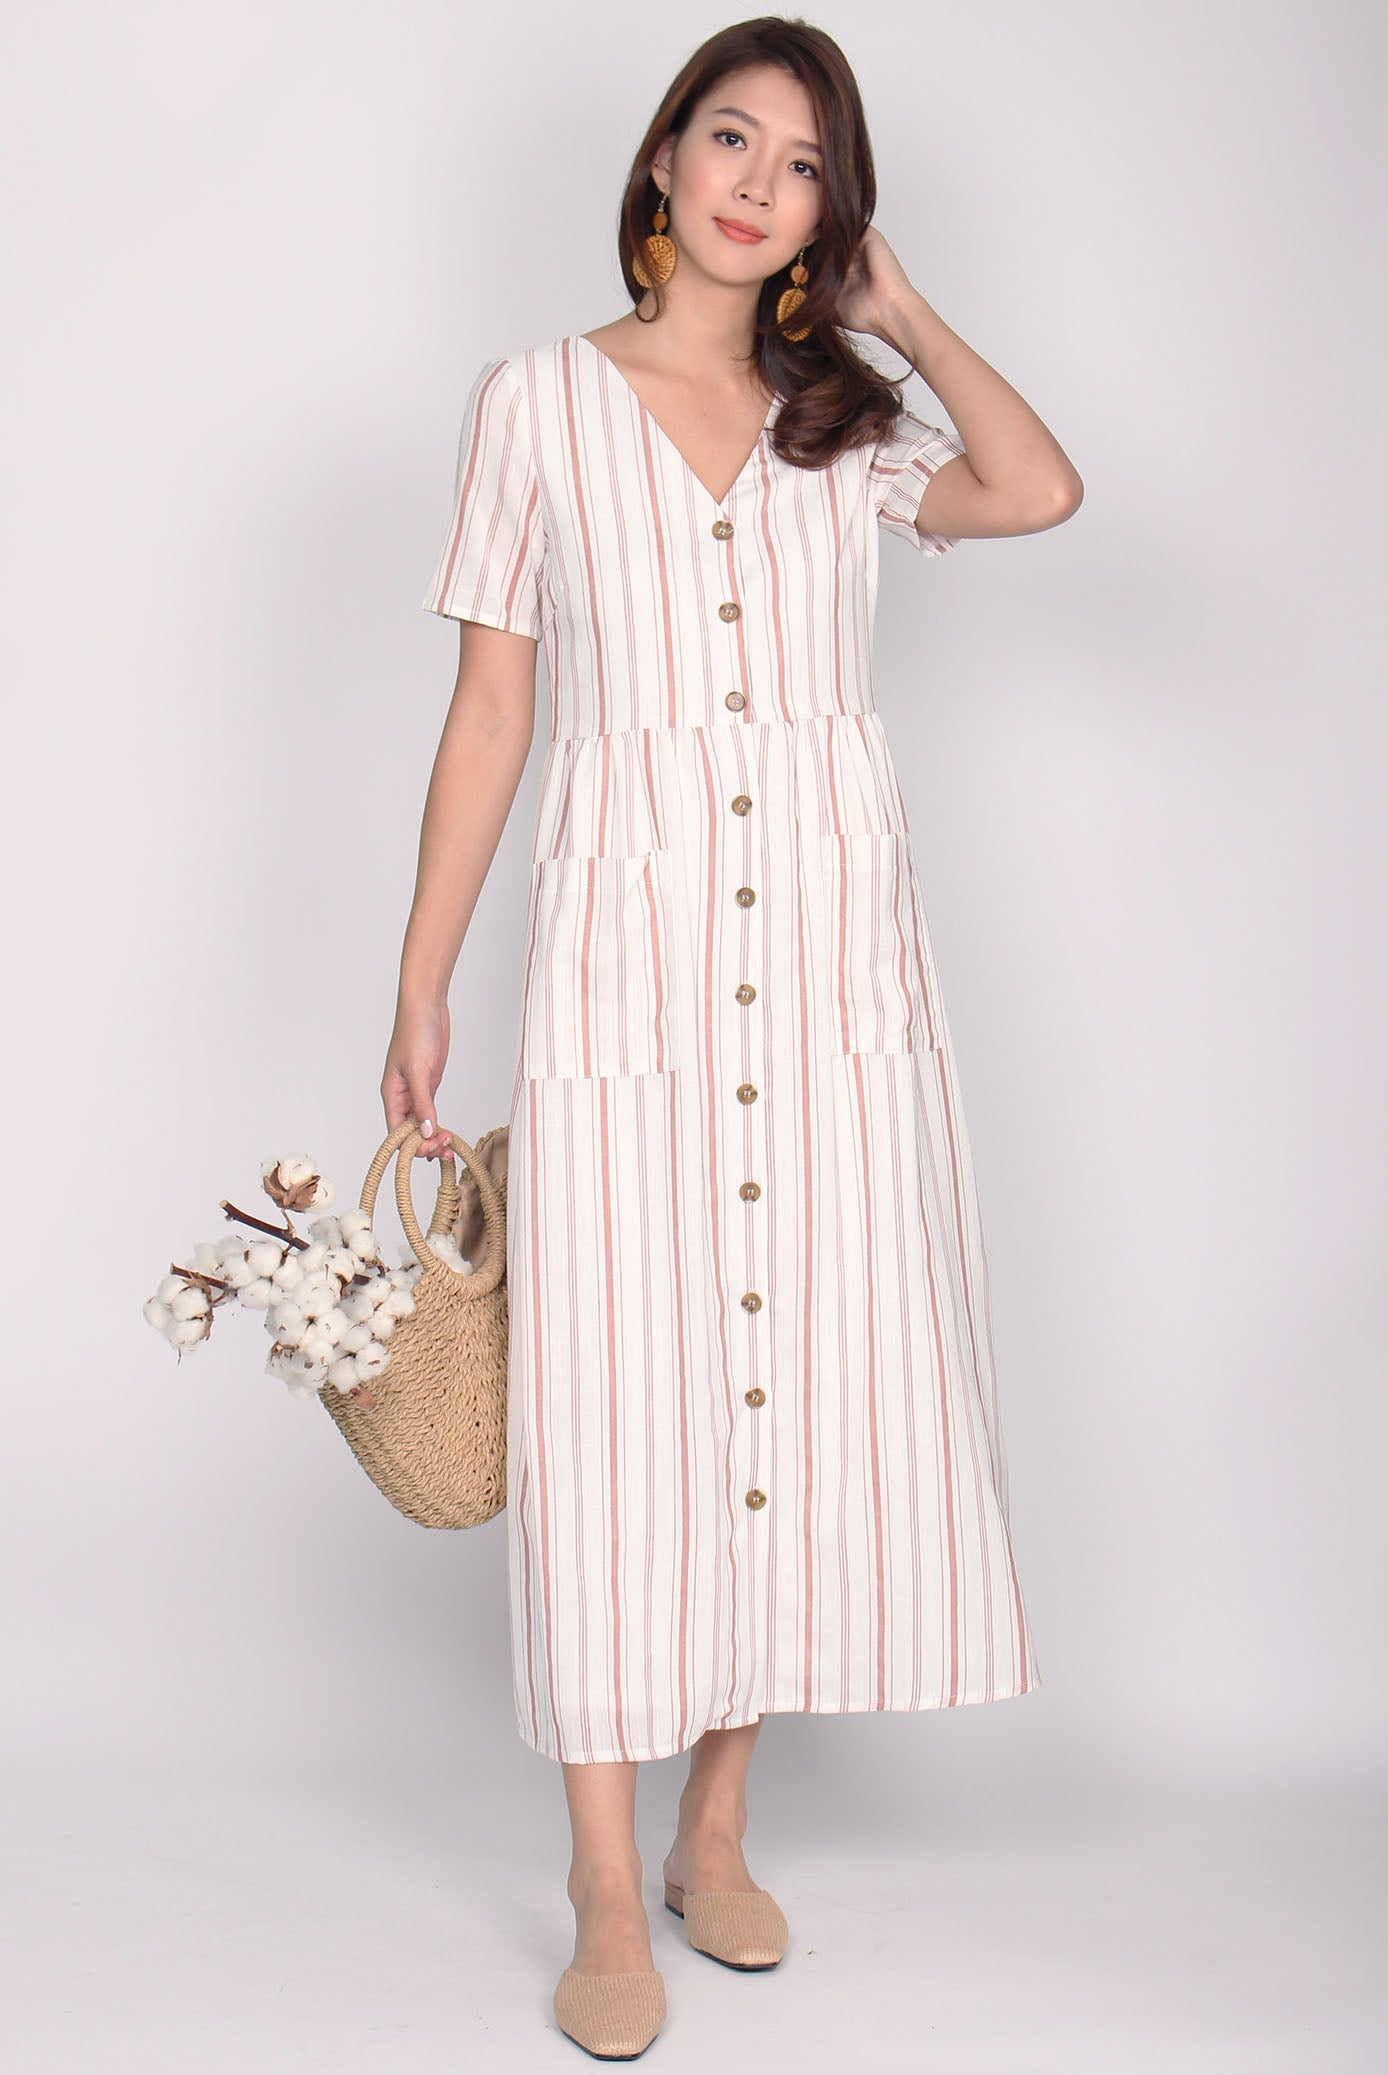 8dfe01d8c4a Blaire Buttons Down Pockets Dress In Pink Stripes – The Design Closets